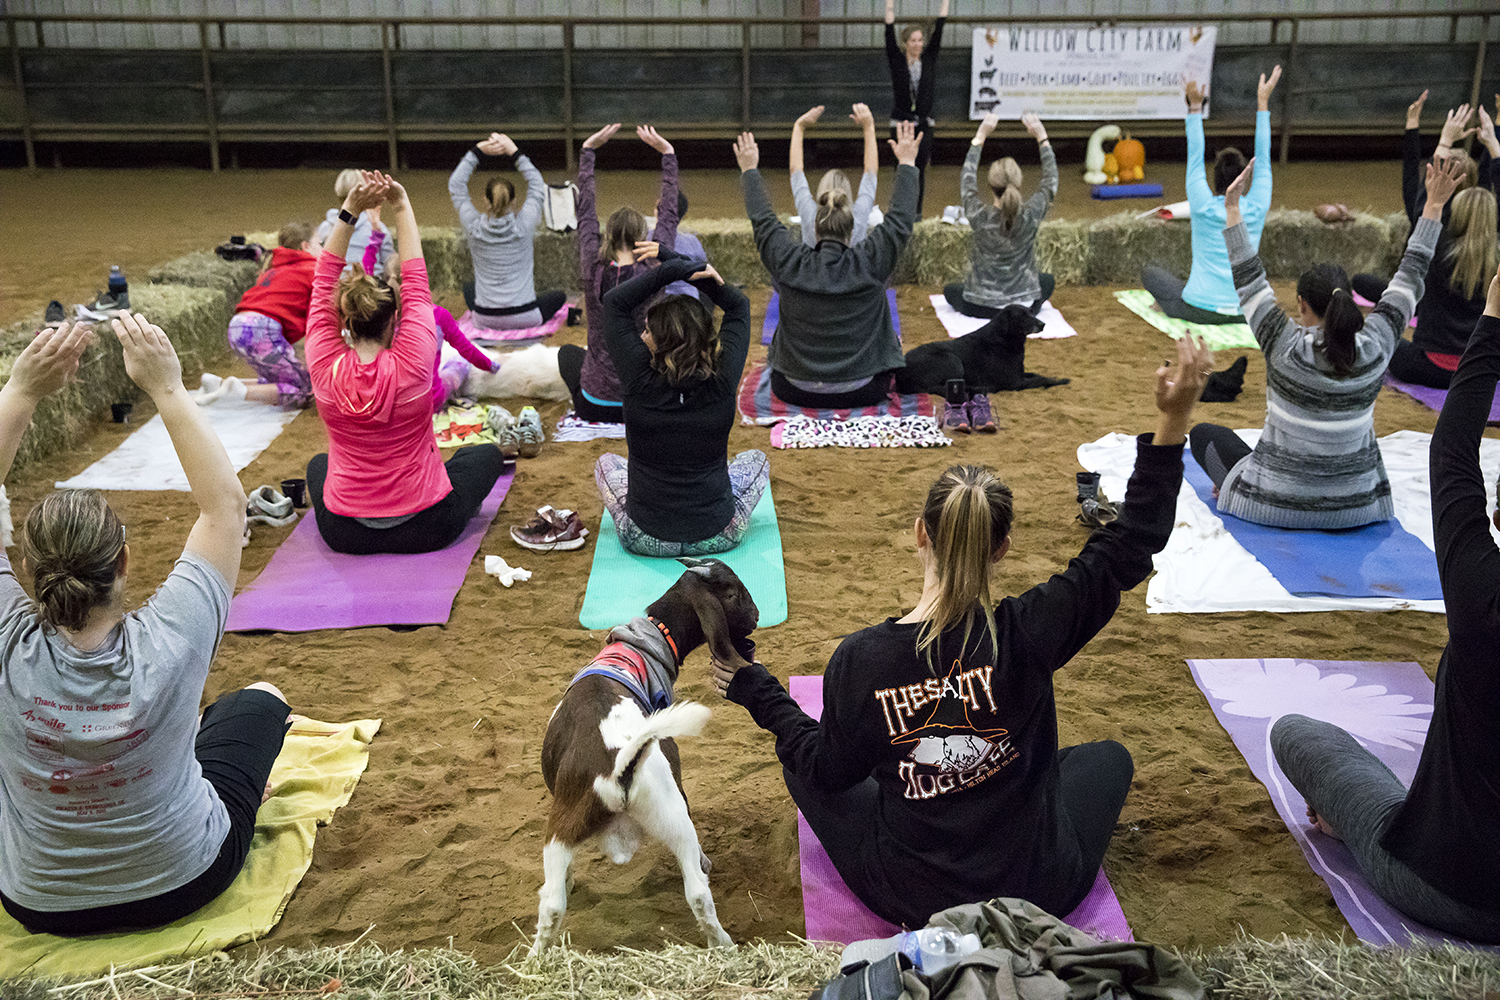 Participants stretch into a yoga pose in a class with goats Oct. 22 at Willow City Farm near Cantrall. Rich Saal/The State Journal-Register